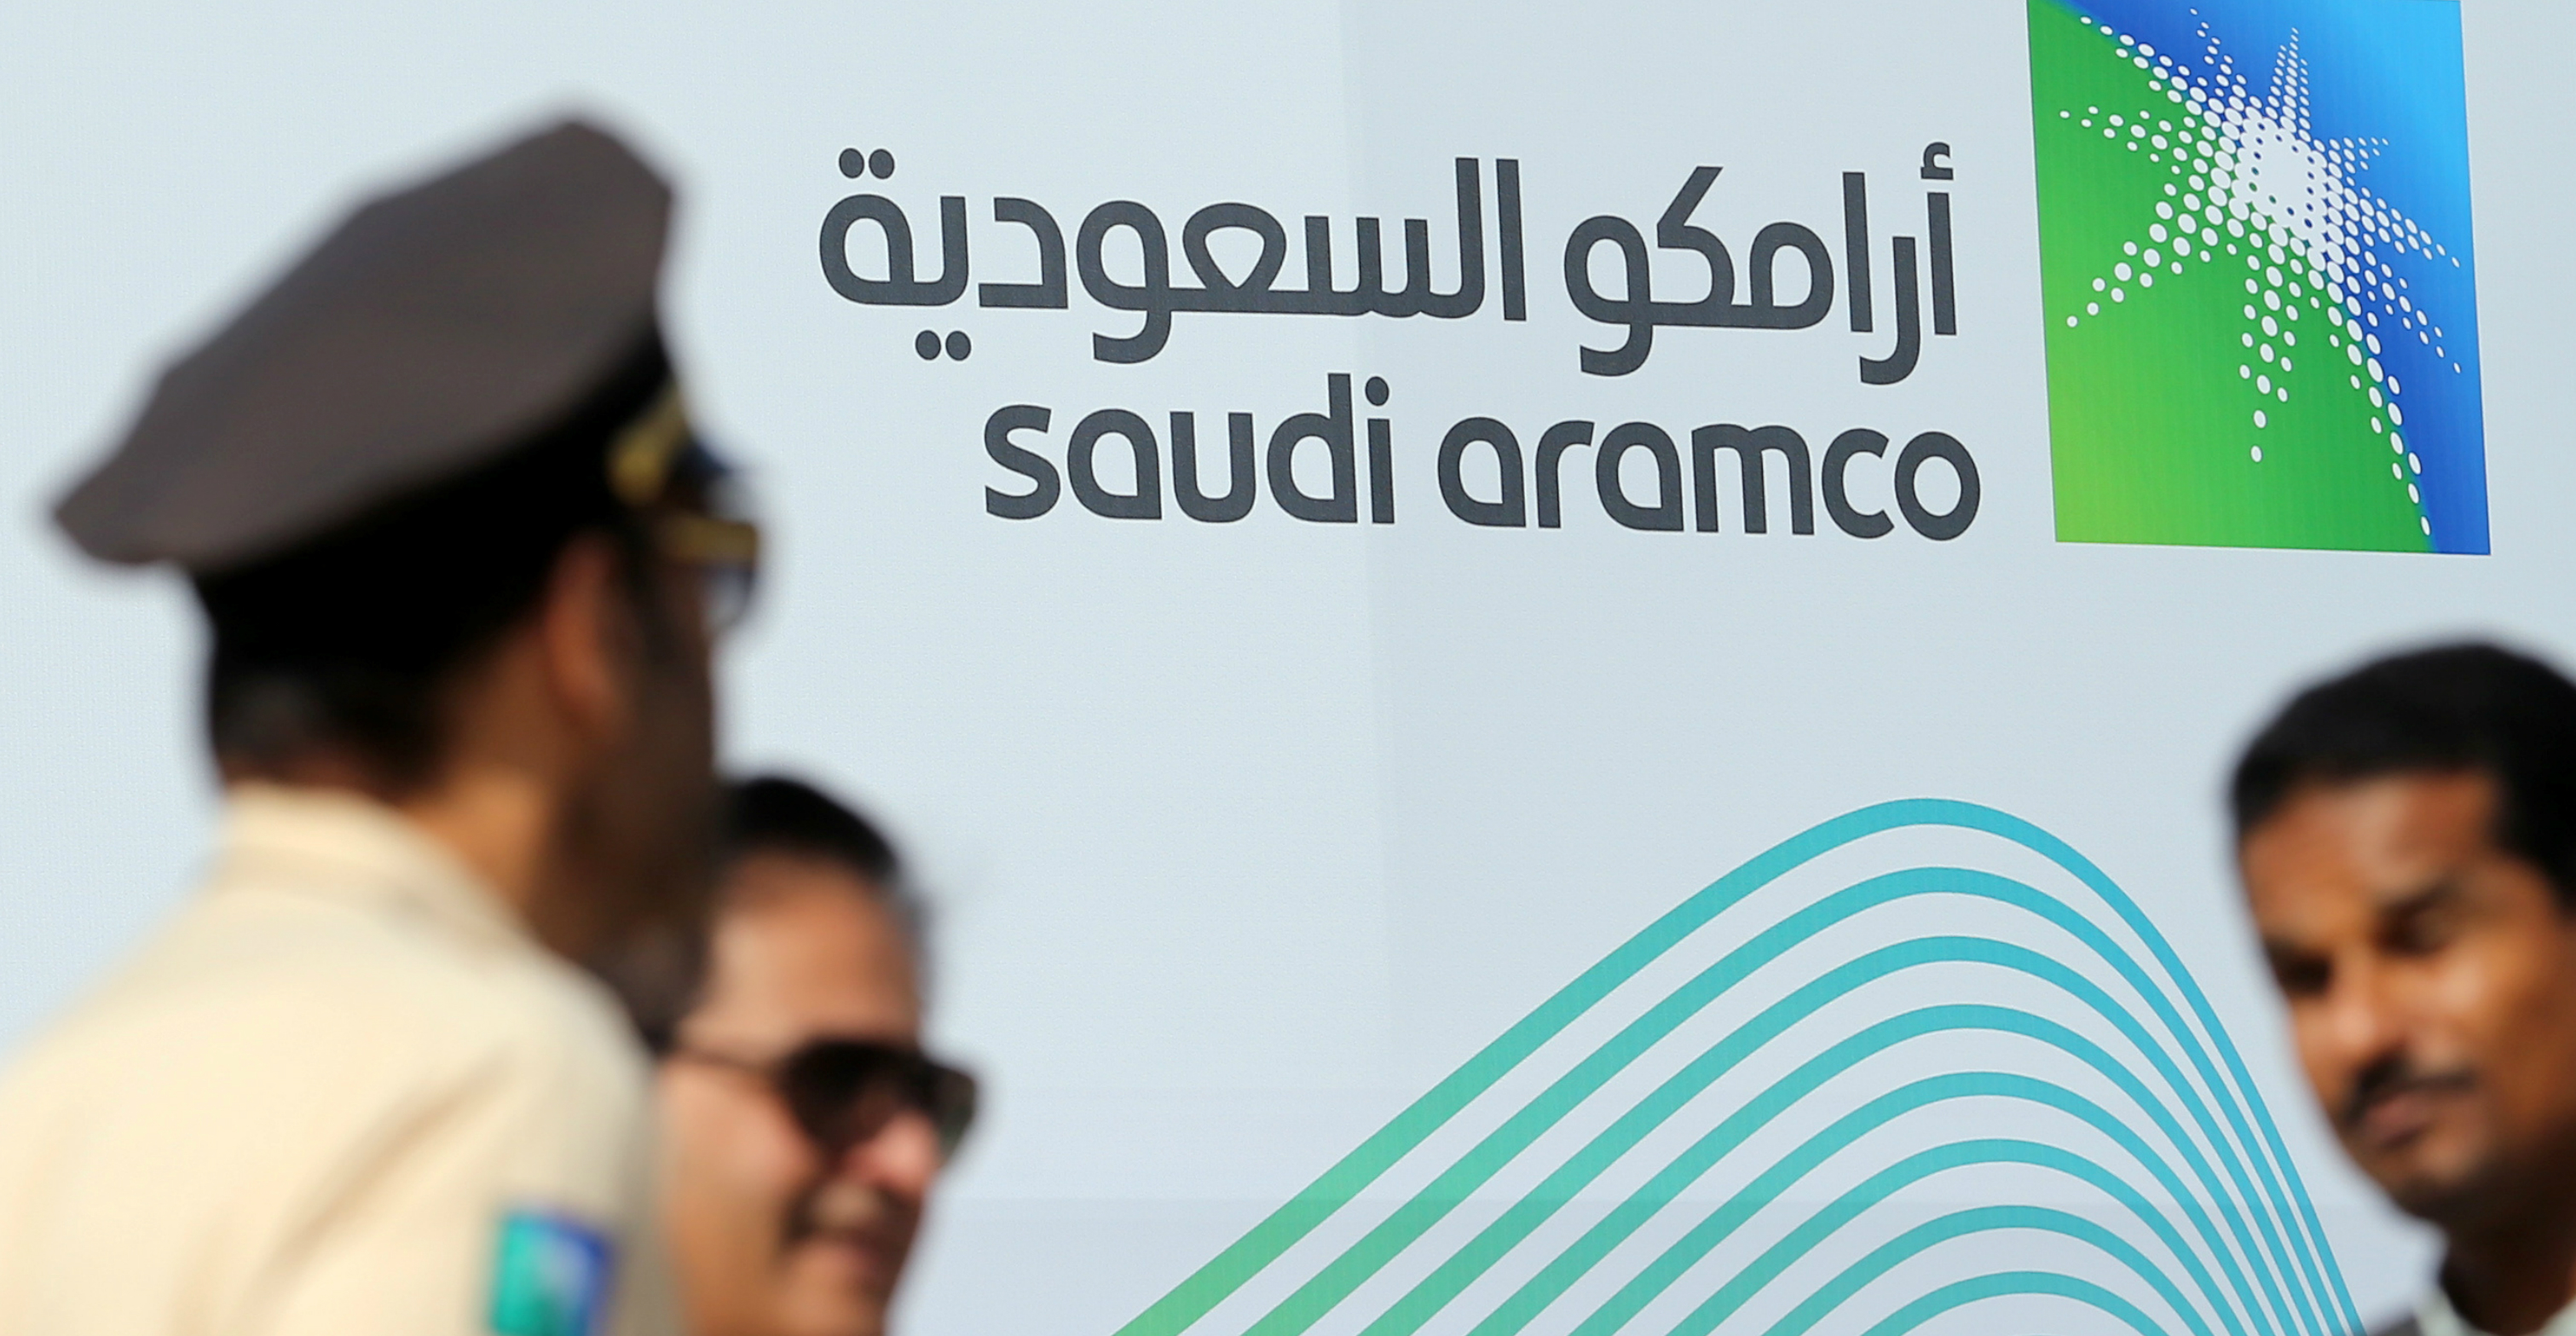 Saudi Aramco plans to sell 1.5 percent of the company, or about 3 billion shares, at an indicative price range of 30 riyals to 32 riyals, valuing the initial public offering at as much as 96 billion riyals (US$25.6 billion). Photo: Reuters